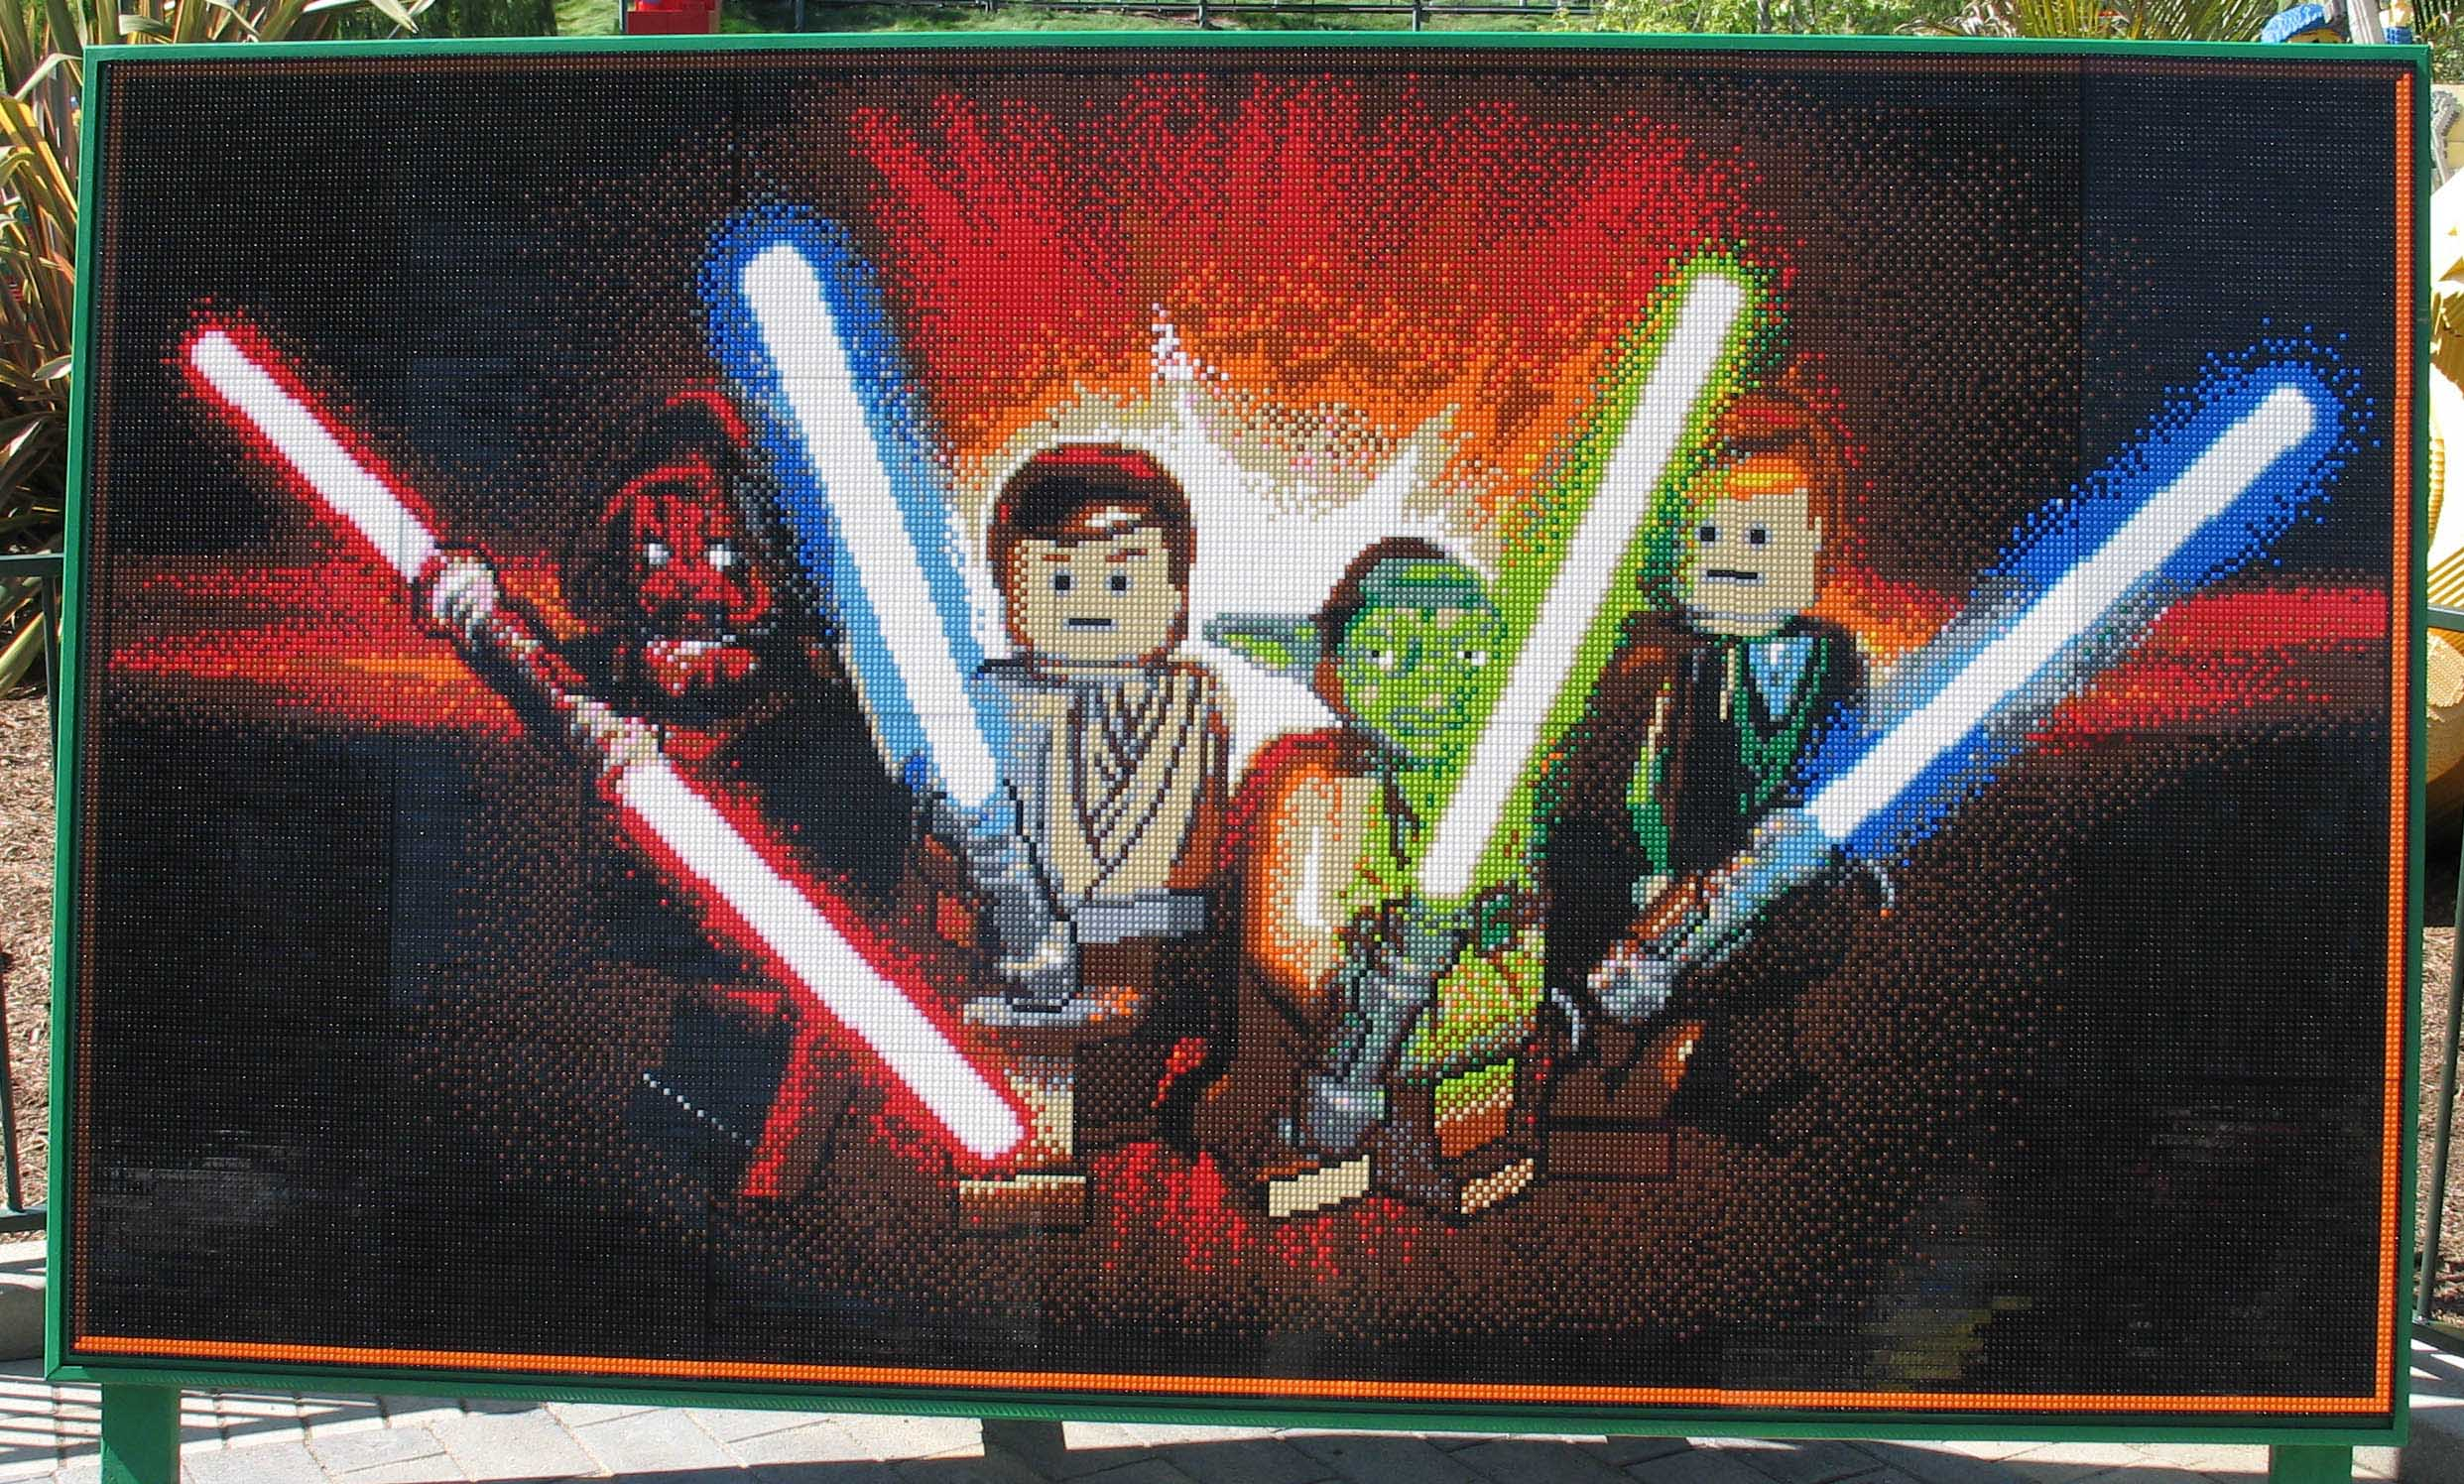 legoland-star-wars-weekend-mosaic-x-huge-file-x.jpg